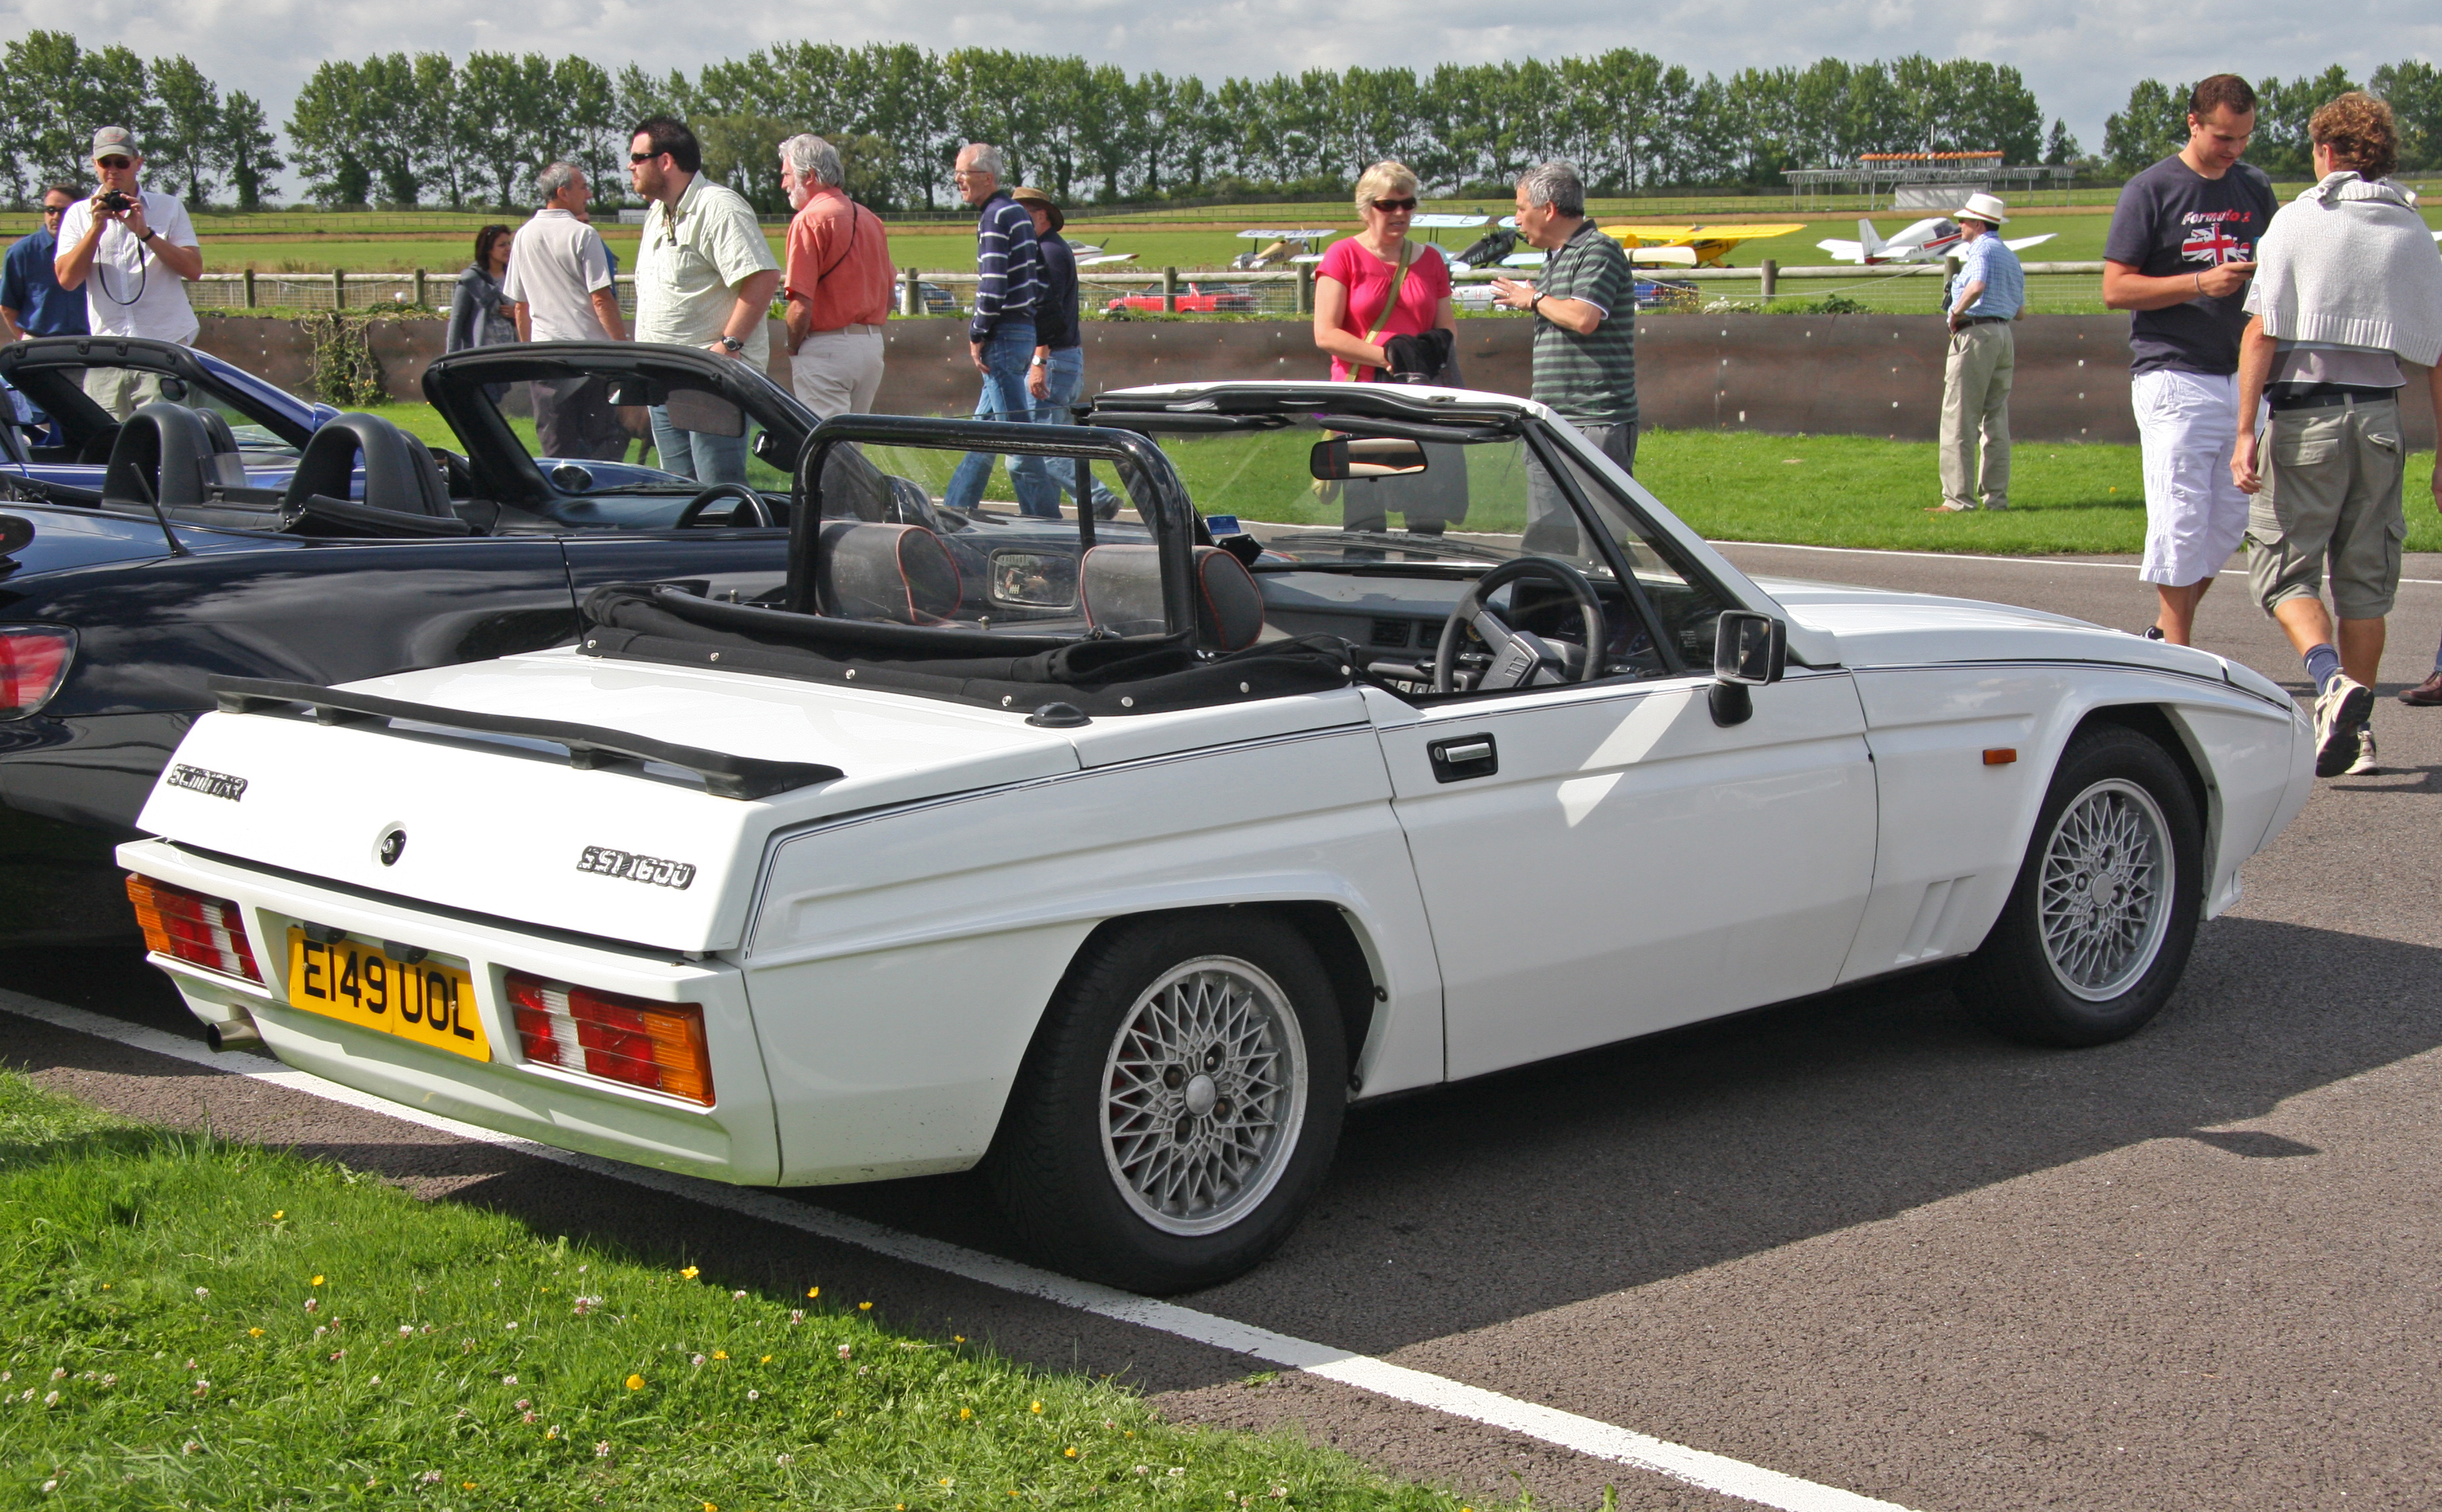 File:Reliant Scimitar SS1 - Flickr - exfordy.jpg - Wikimedia Commons